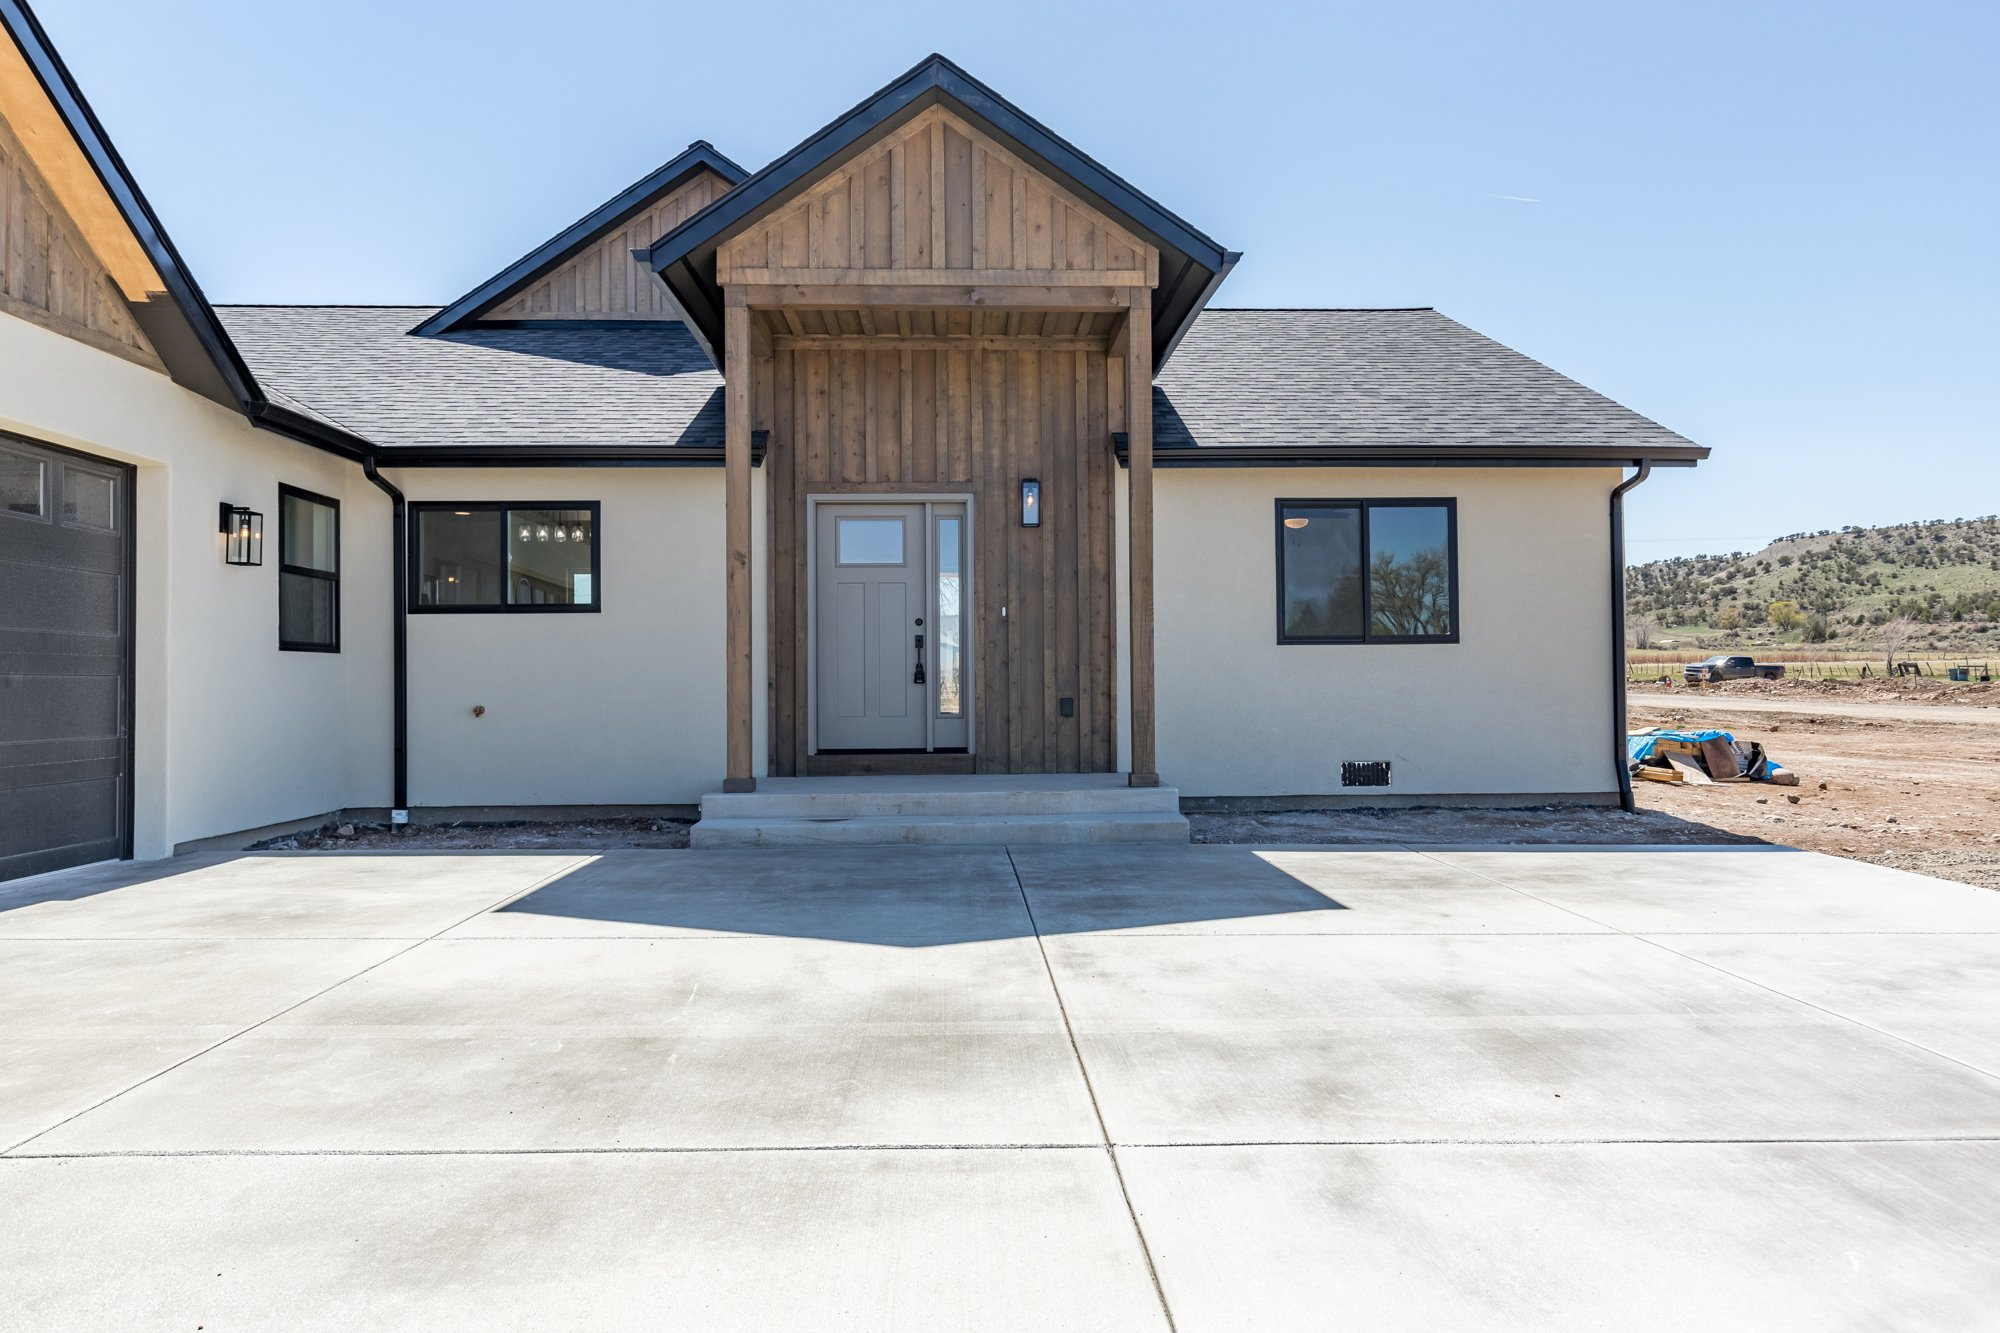 Covered Front Porch - TBD Highway 550 Montrose, CO 81403 - Atha Team New Construction Real Estate